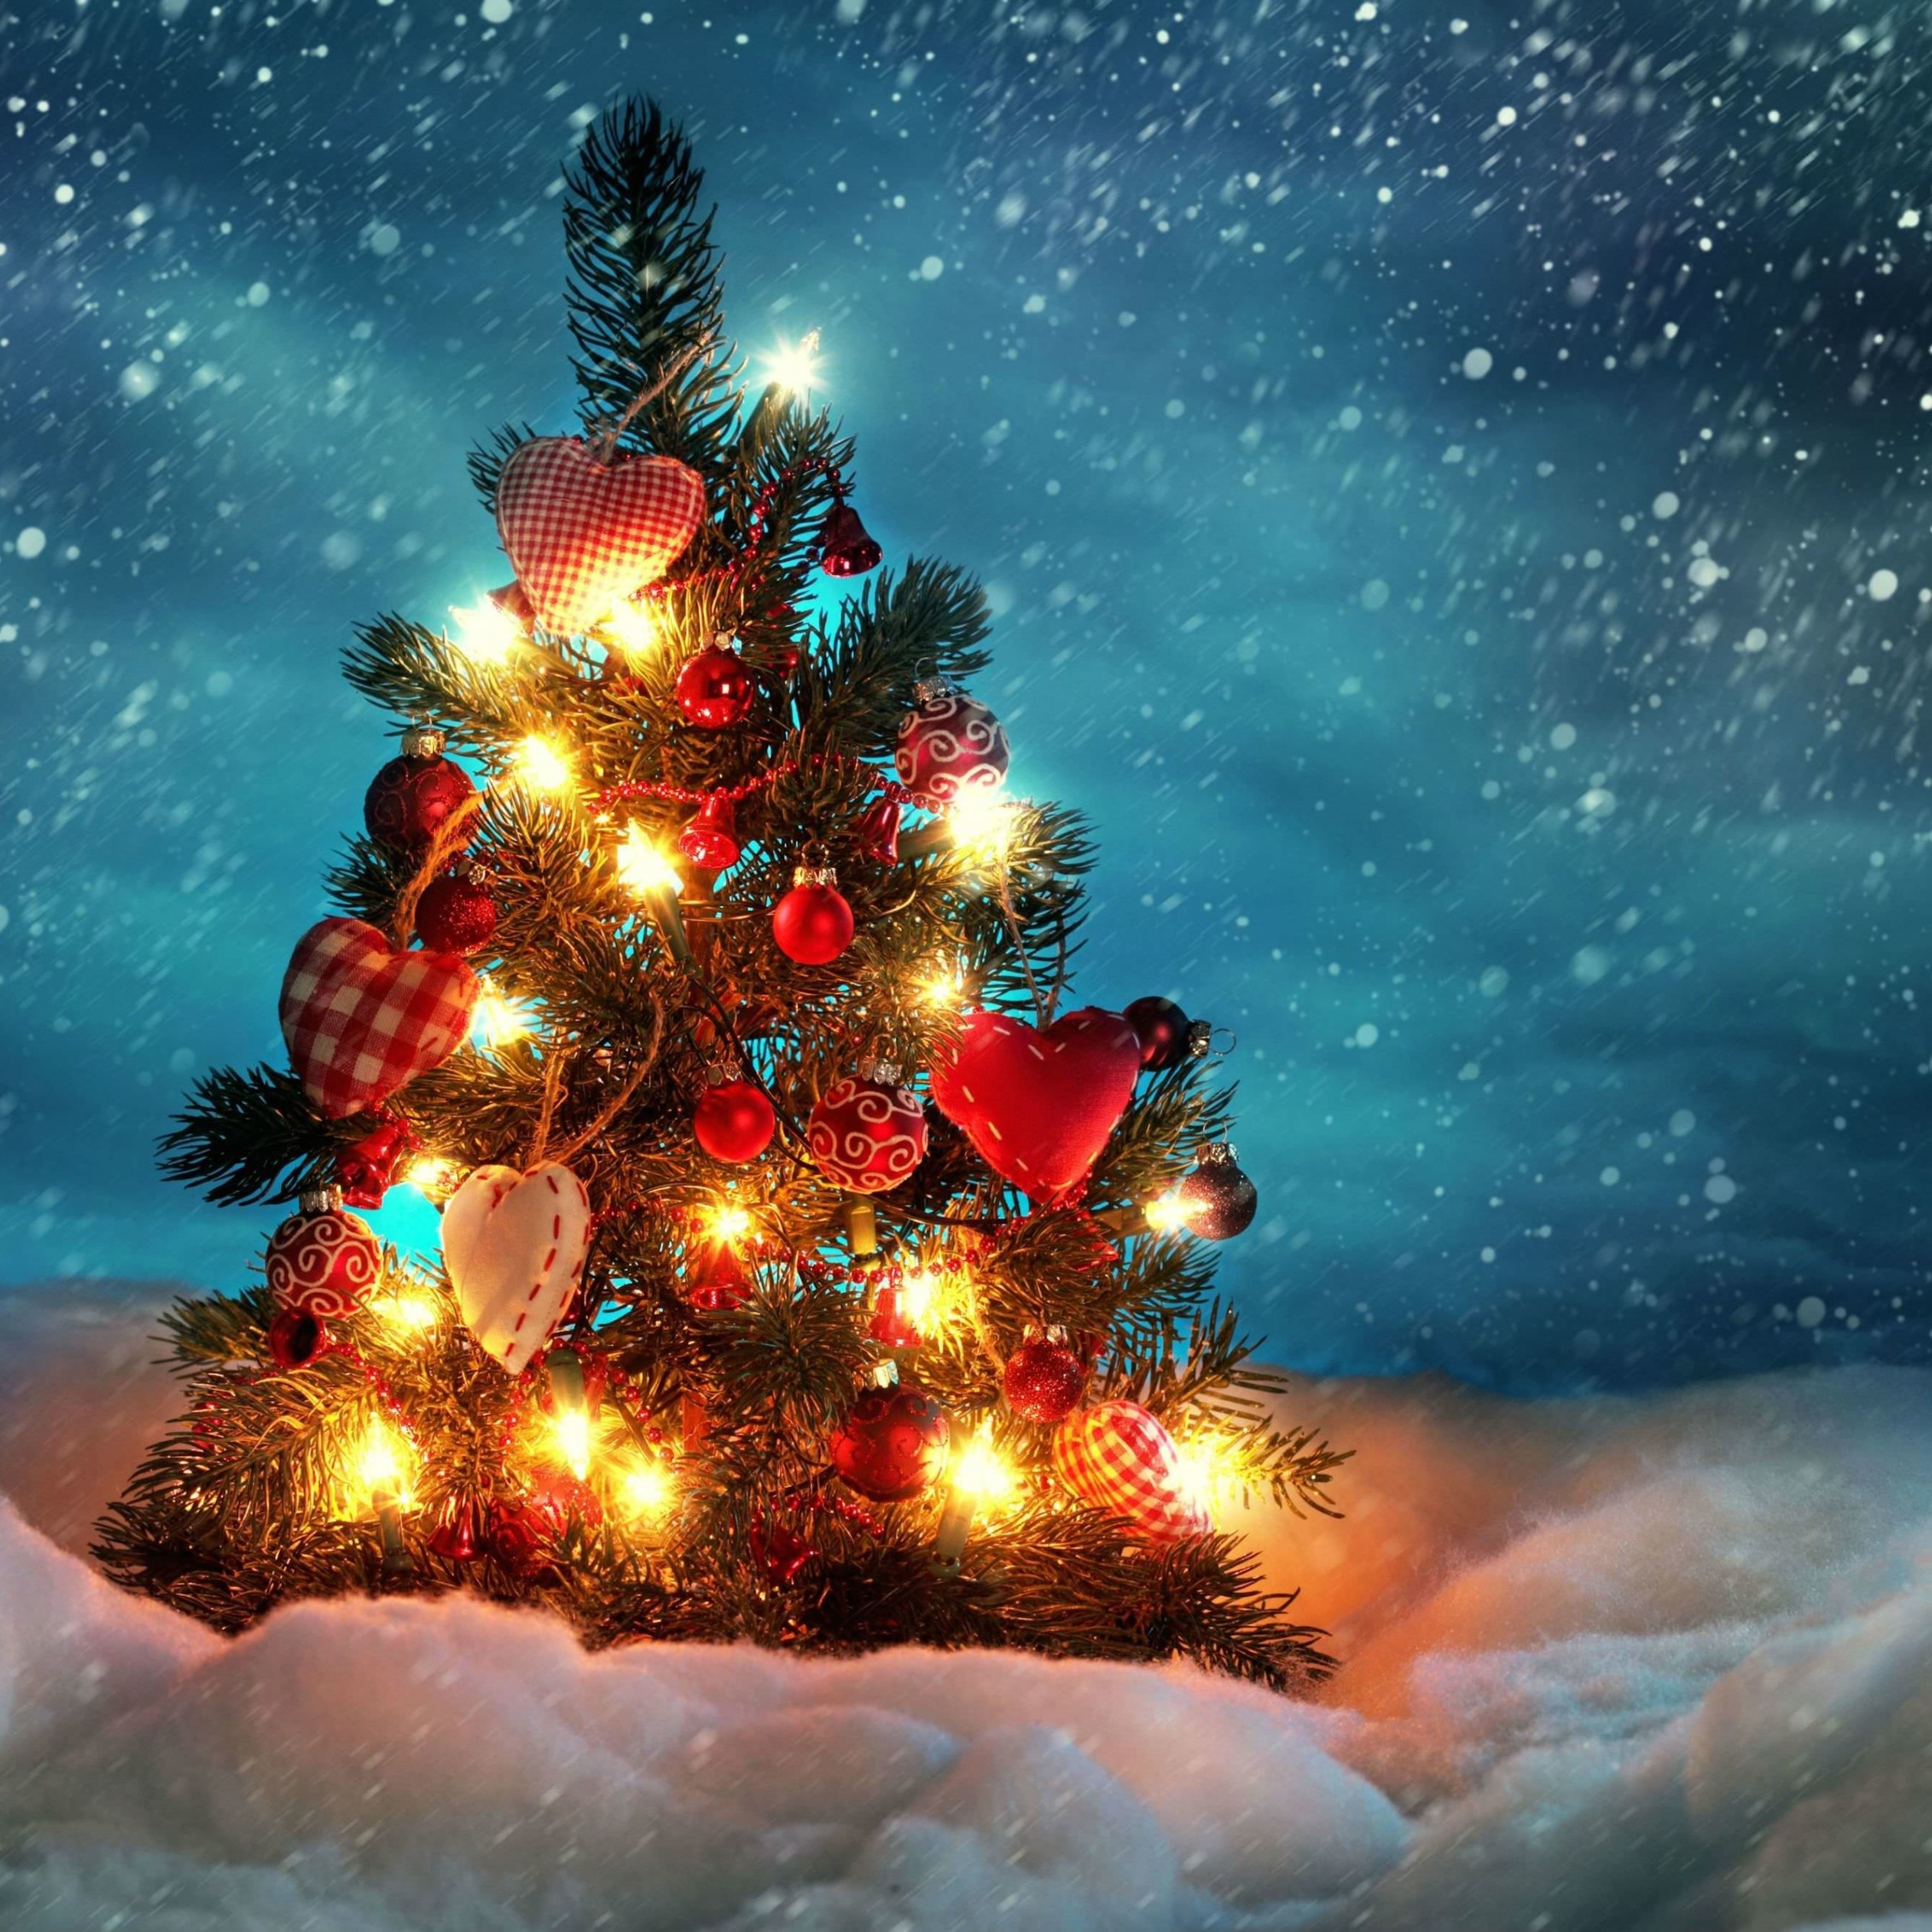 Christmas Tree Wallpaper for Apple iPad Air